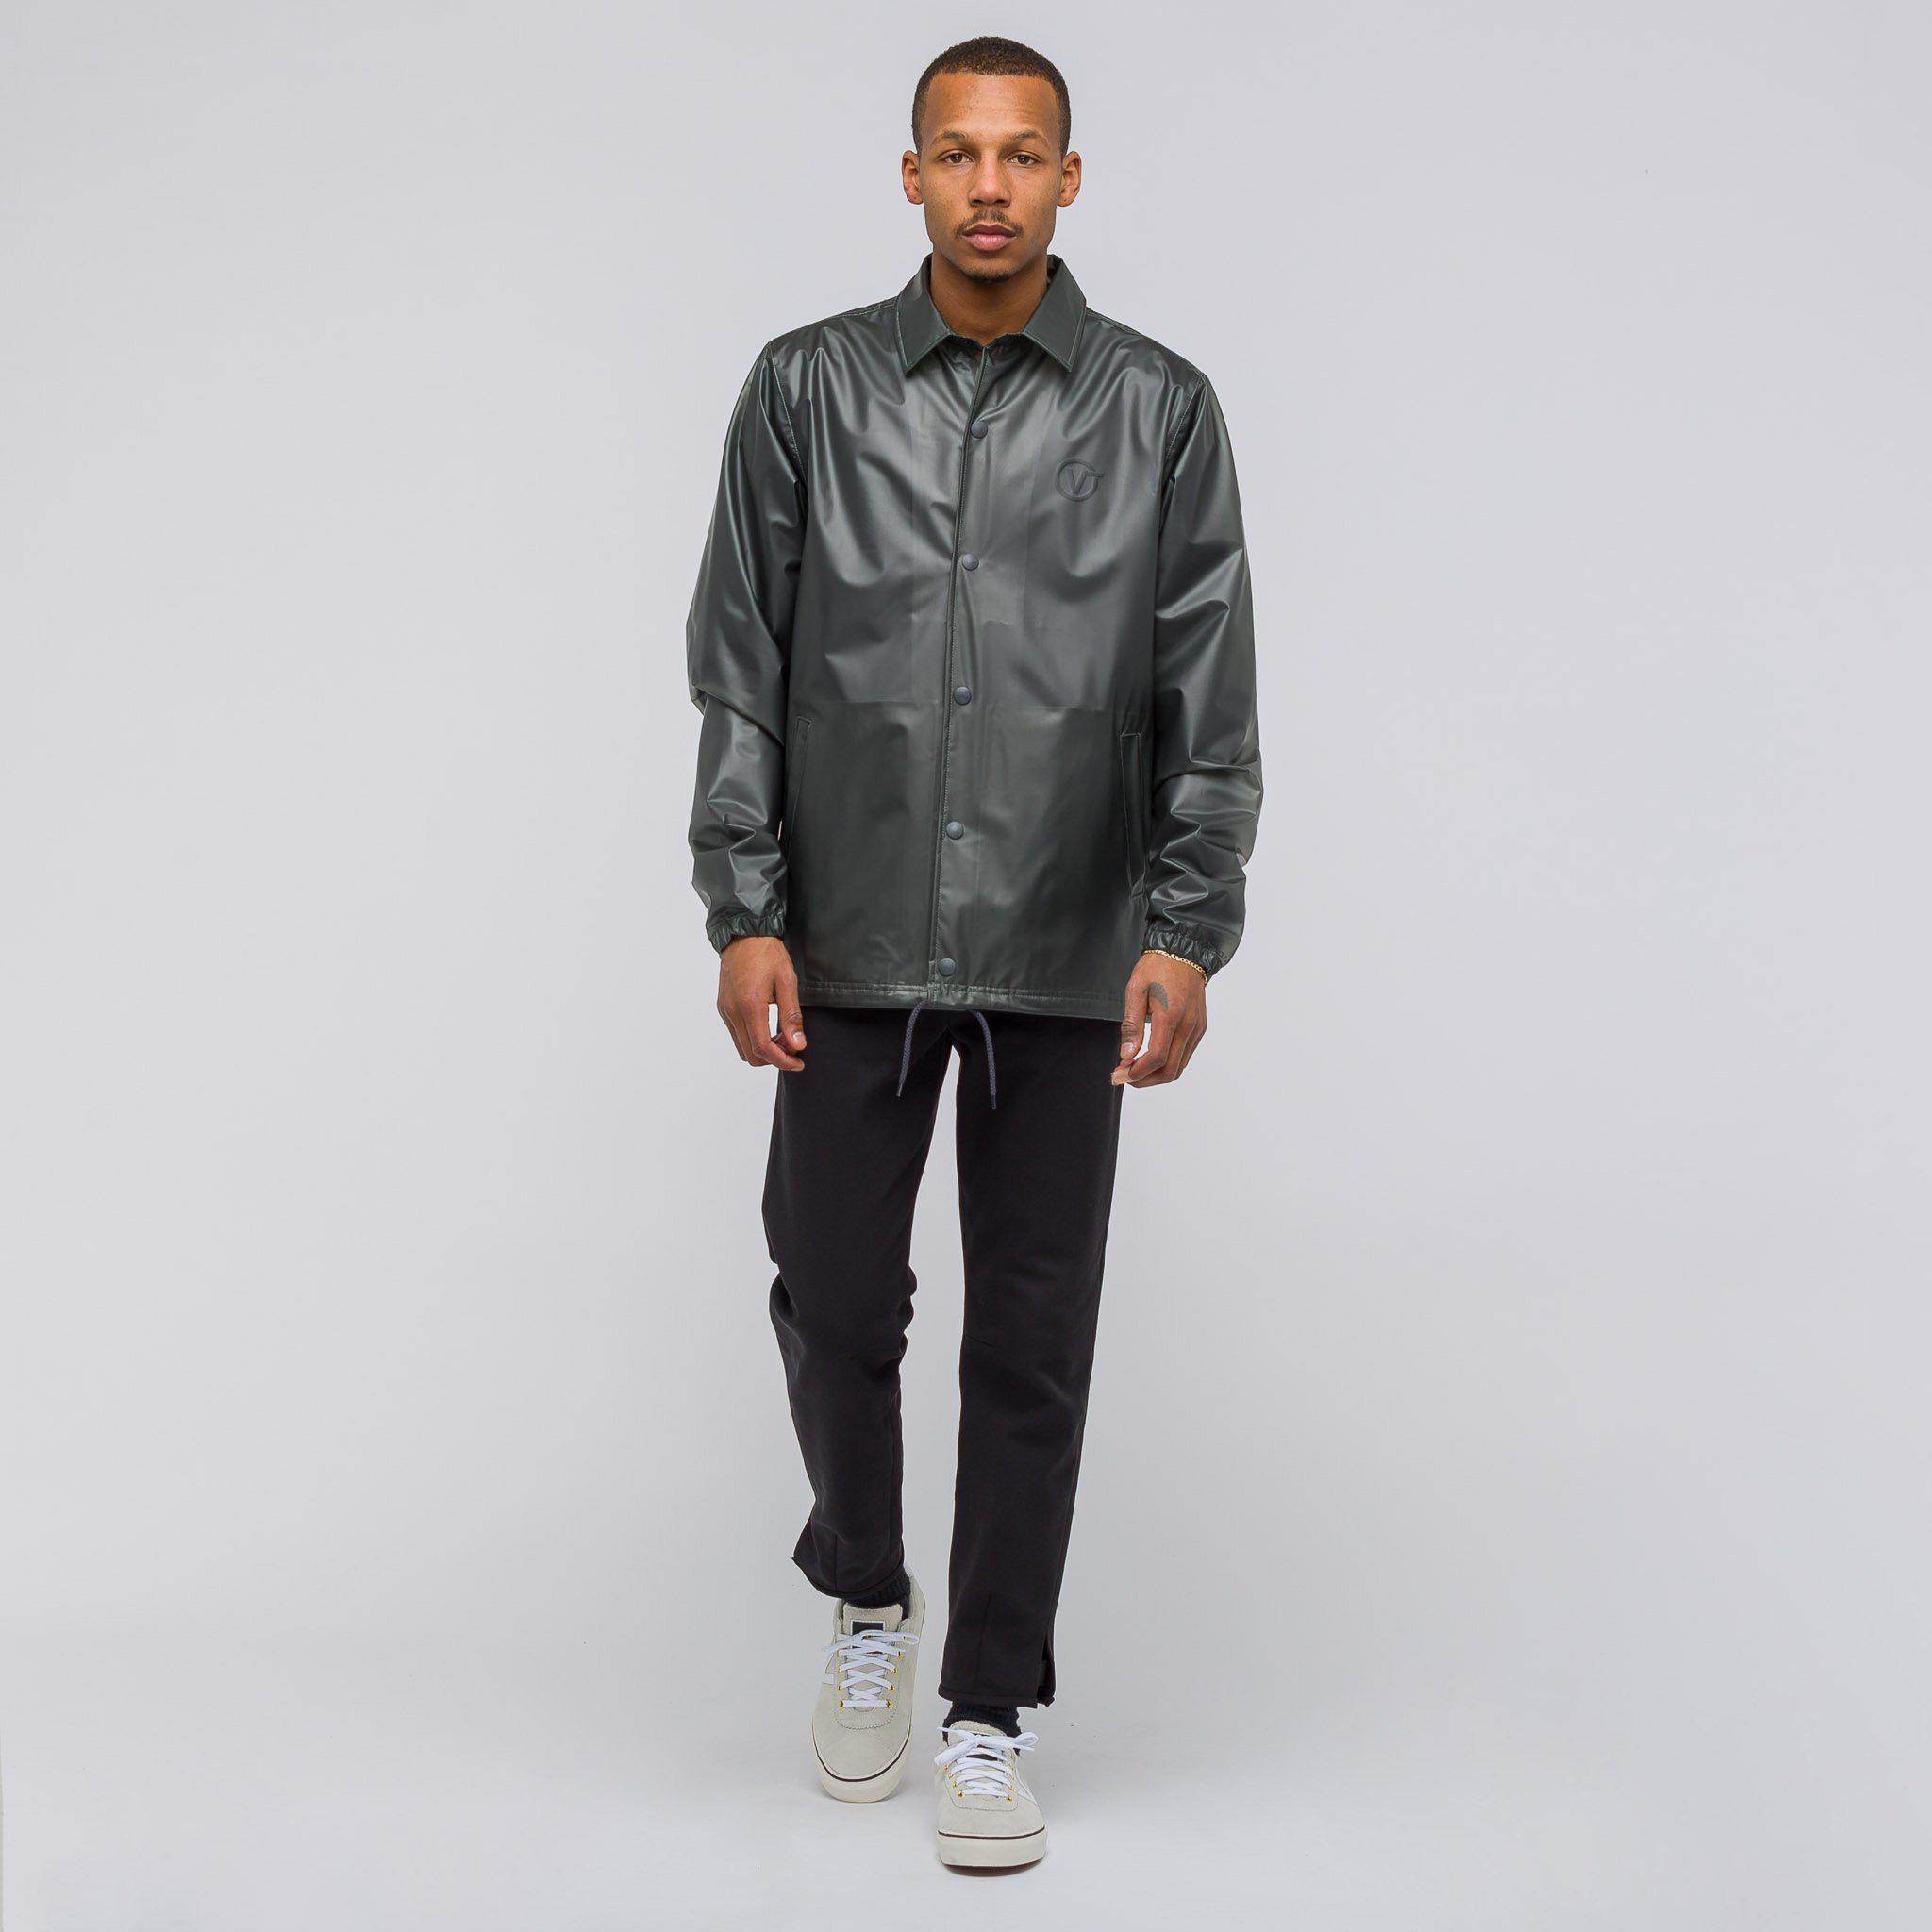 Lyst Vans X Lqqk Studio Coaches Jacket In Clear Grey In Gray For Men